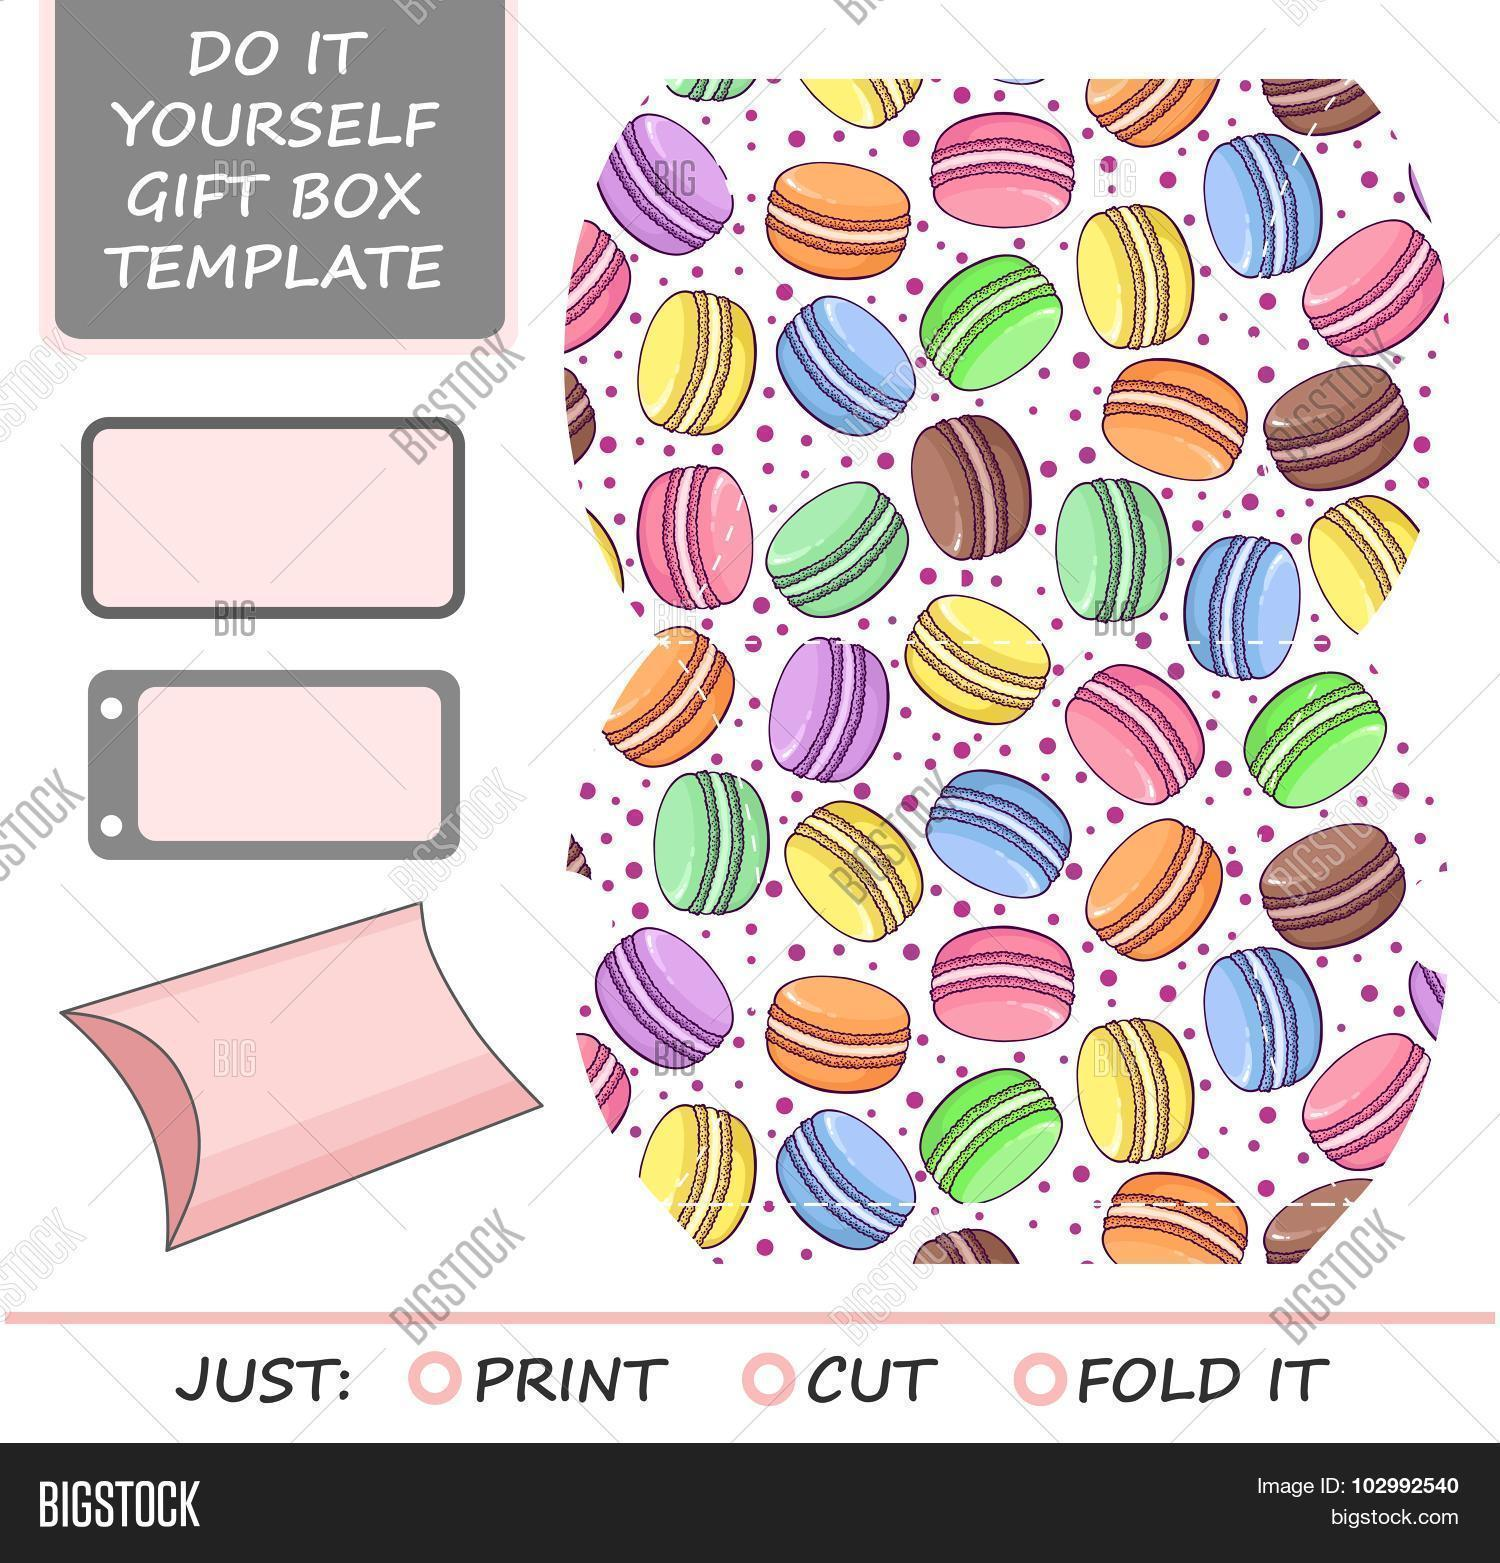 Favor gift box die vector photo free trial bigstock favor gift box die cut box template with macaron pattern great for birthday or solutioingenieria Images